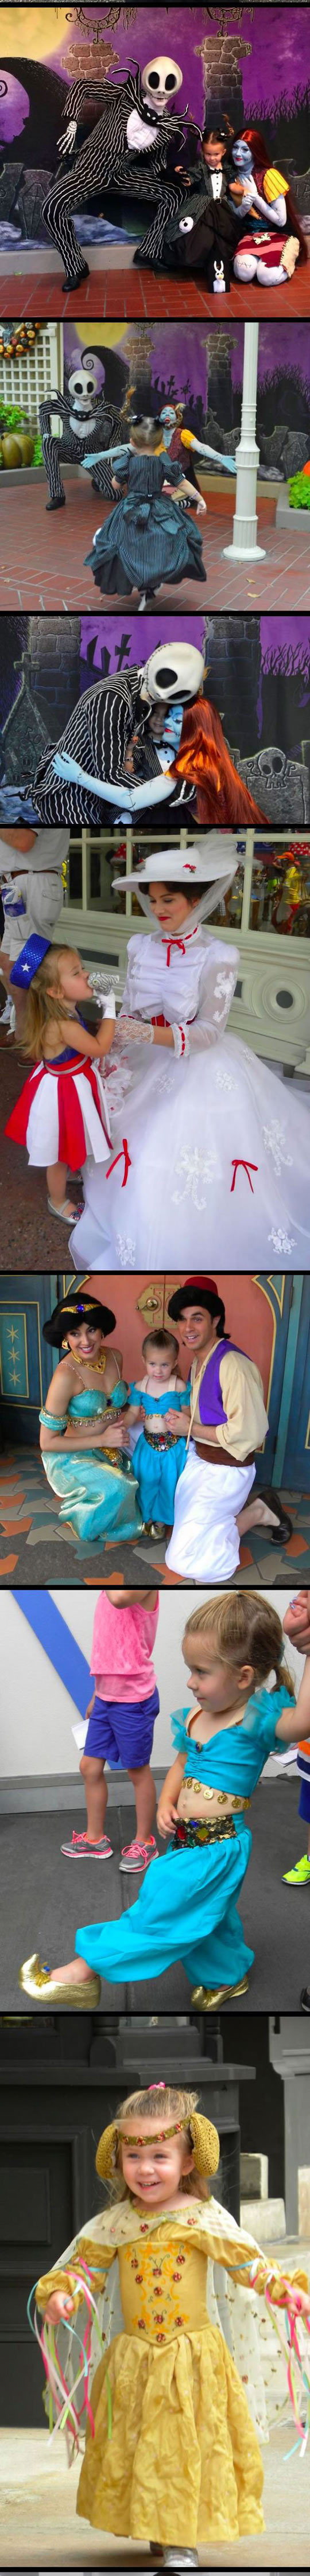 funny-little-girl-costume-dream-Disney